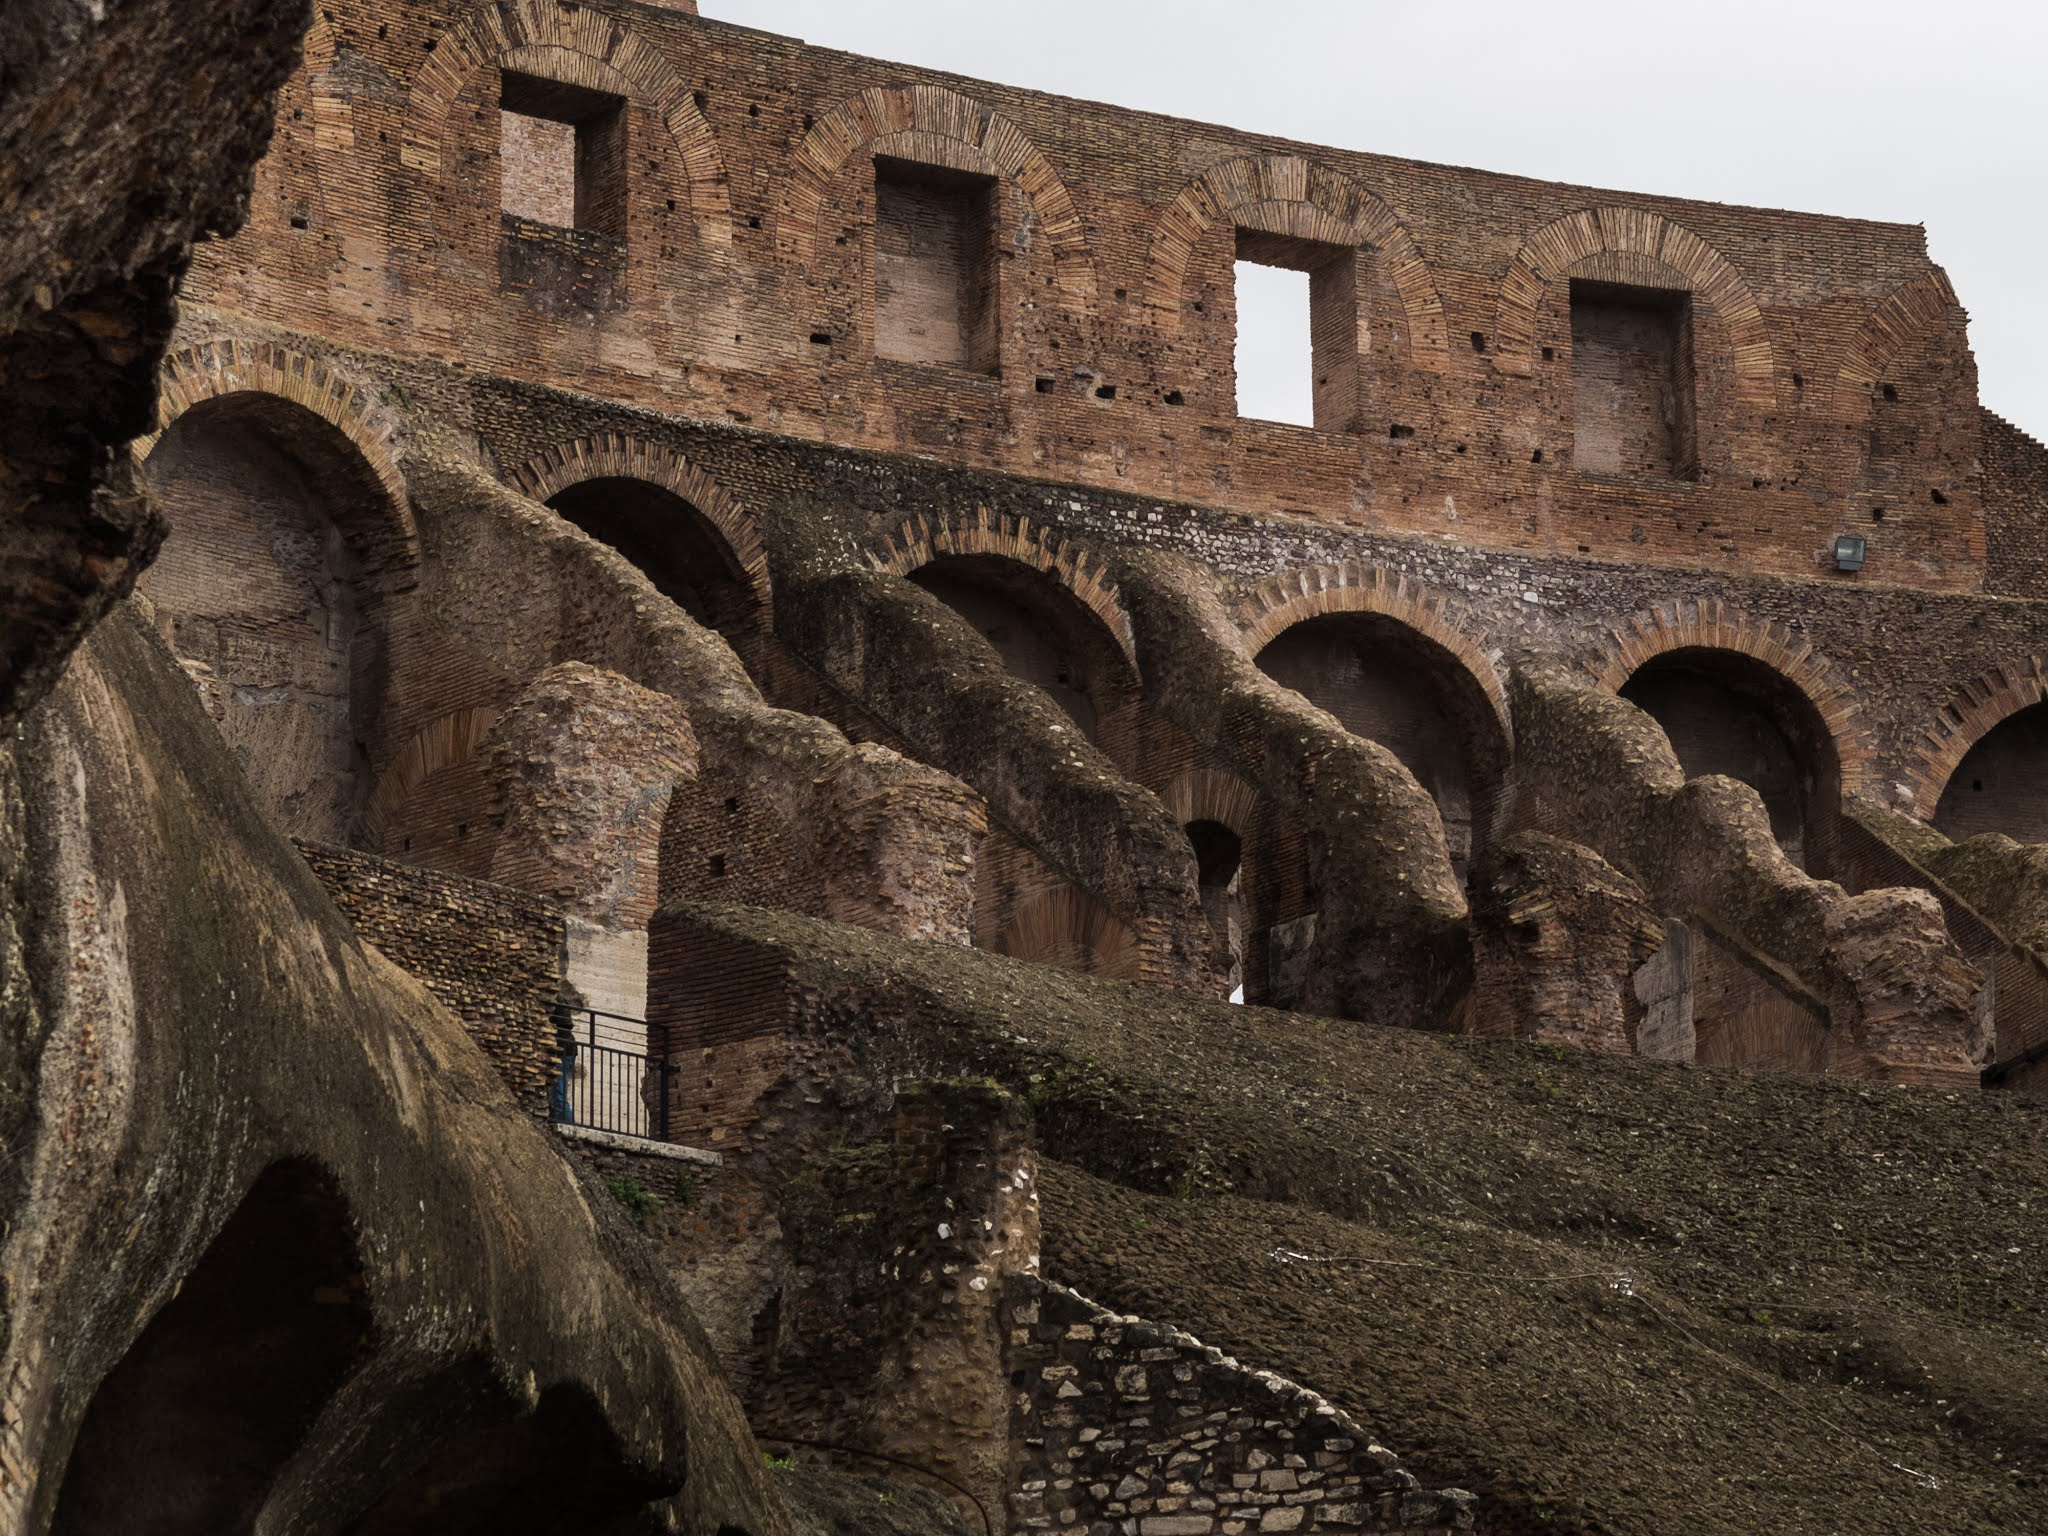 Close up of the interior walls of the Colosseum arena.